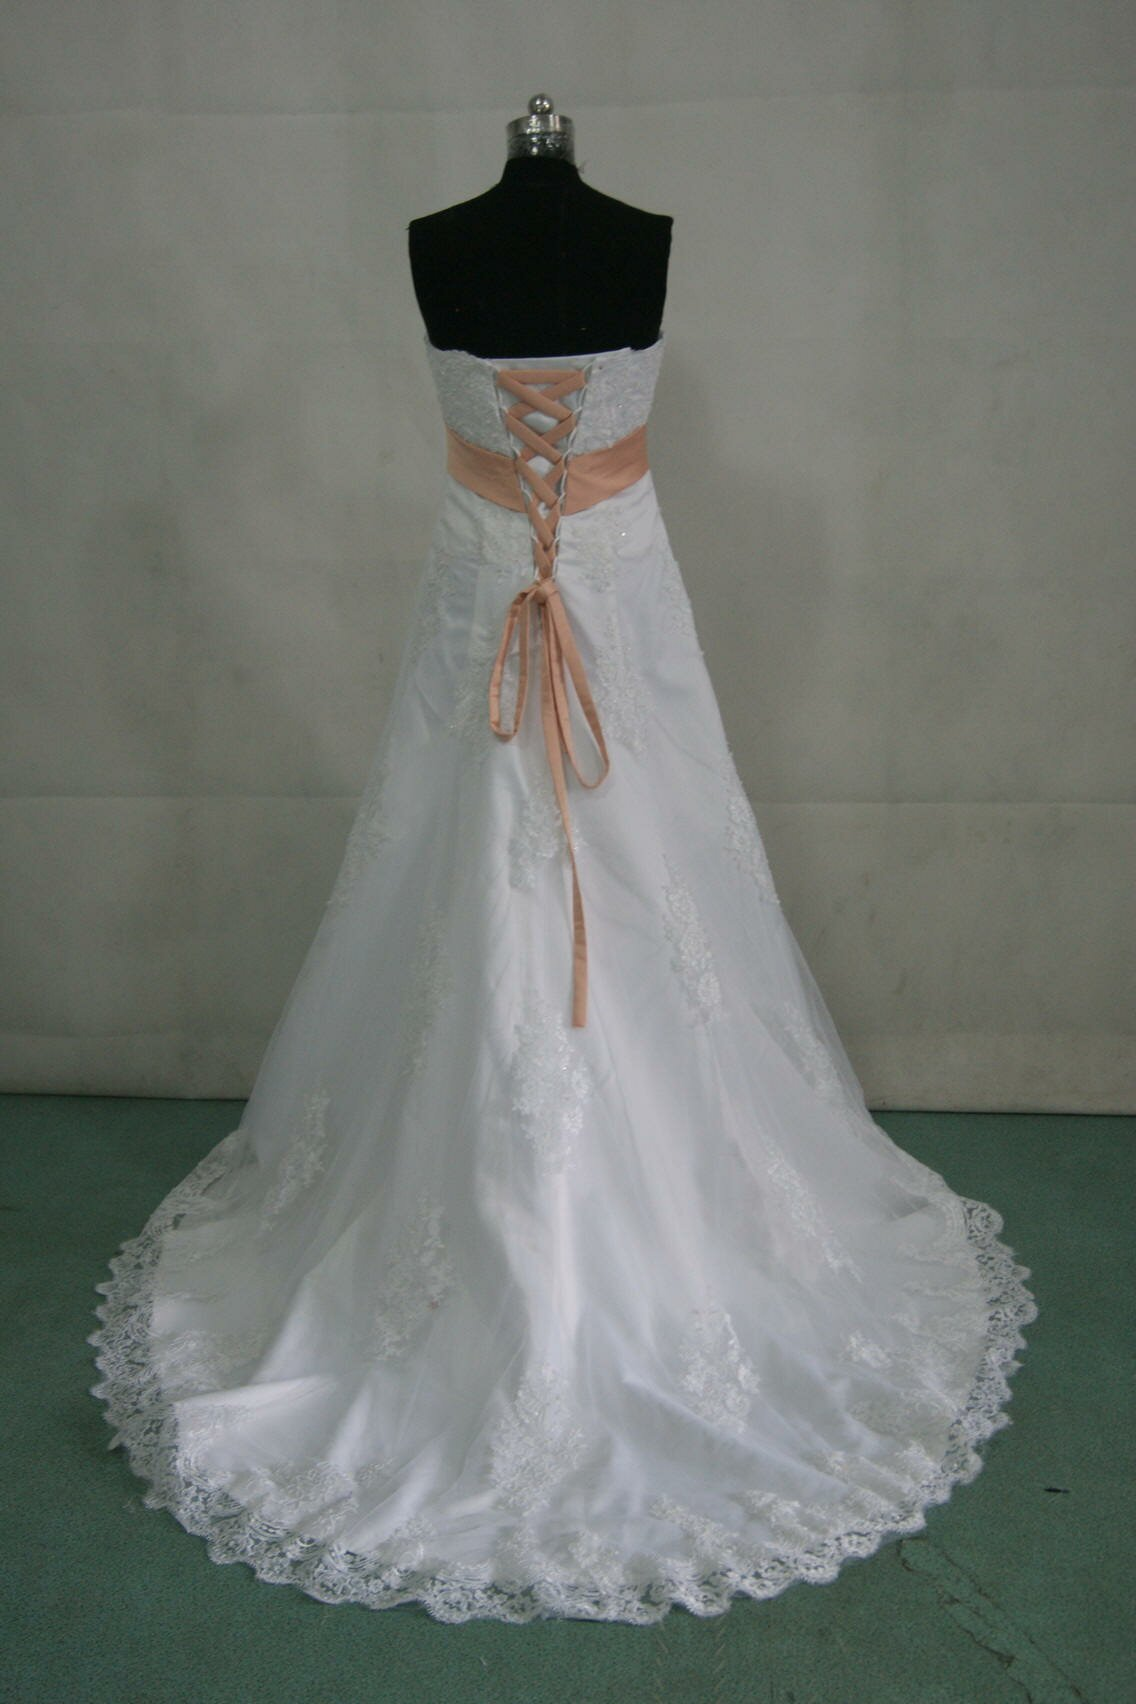 Peach wedding dress to bring out the glimpses in your